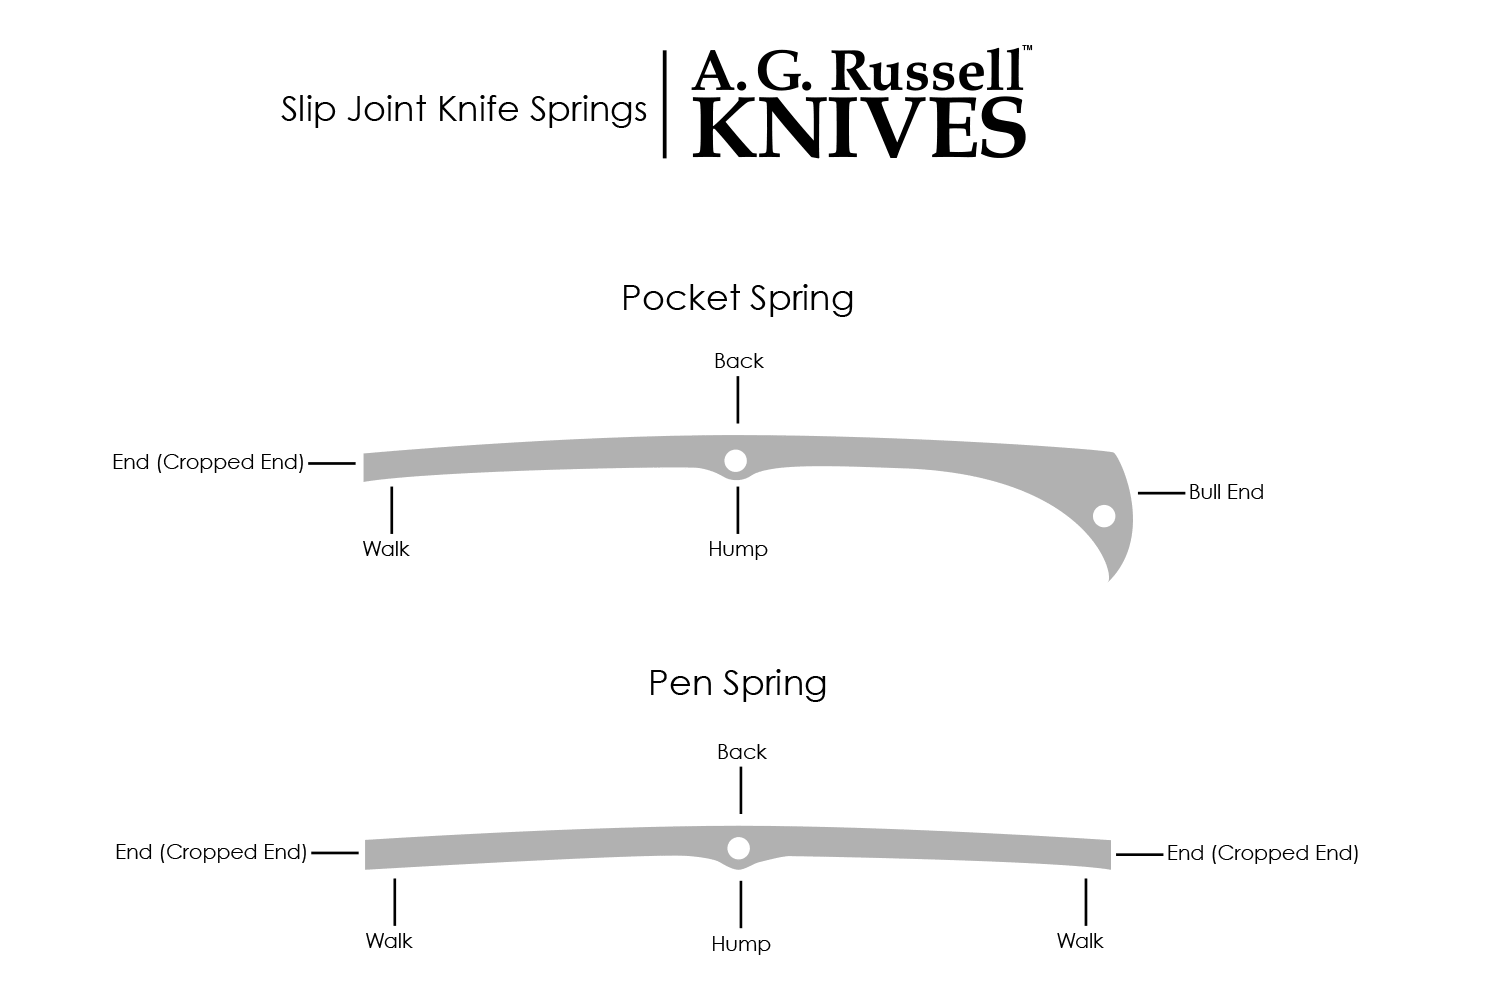 parts of a pocket knife diagram switchmaster mid position valve wiring slip joint collection